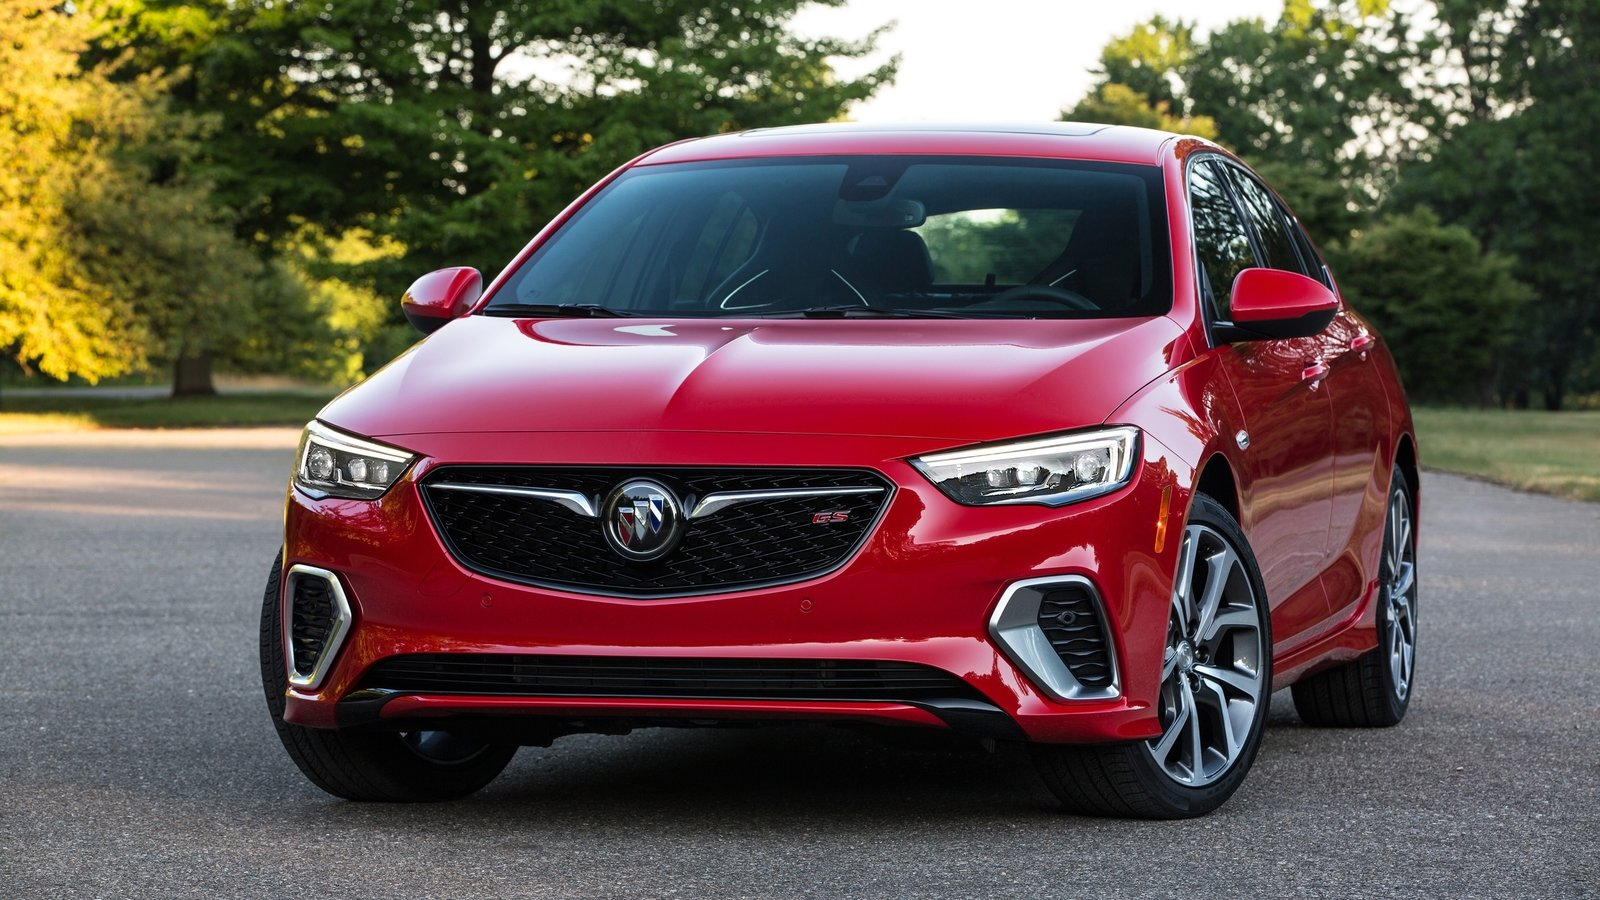 2018 Buick Regal GS | Top Speed